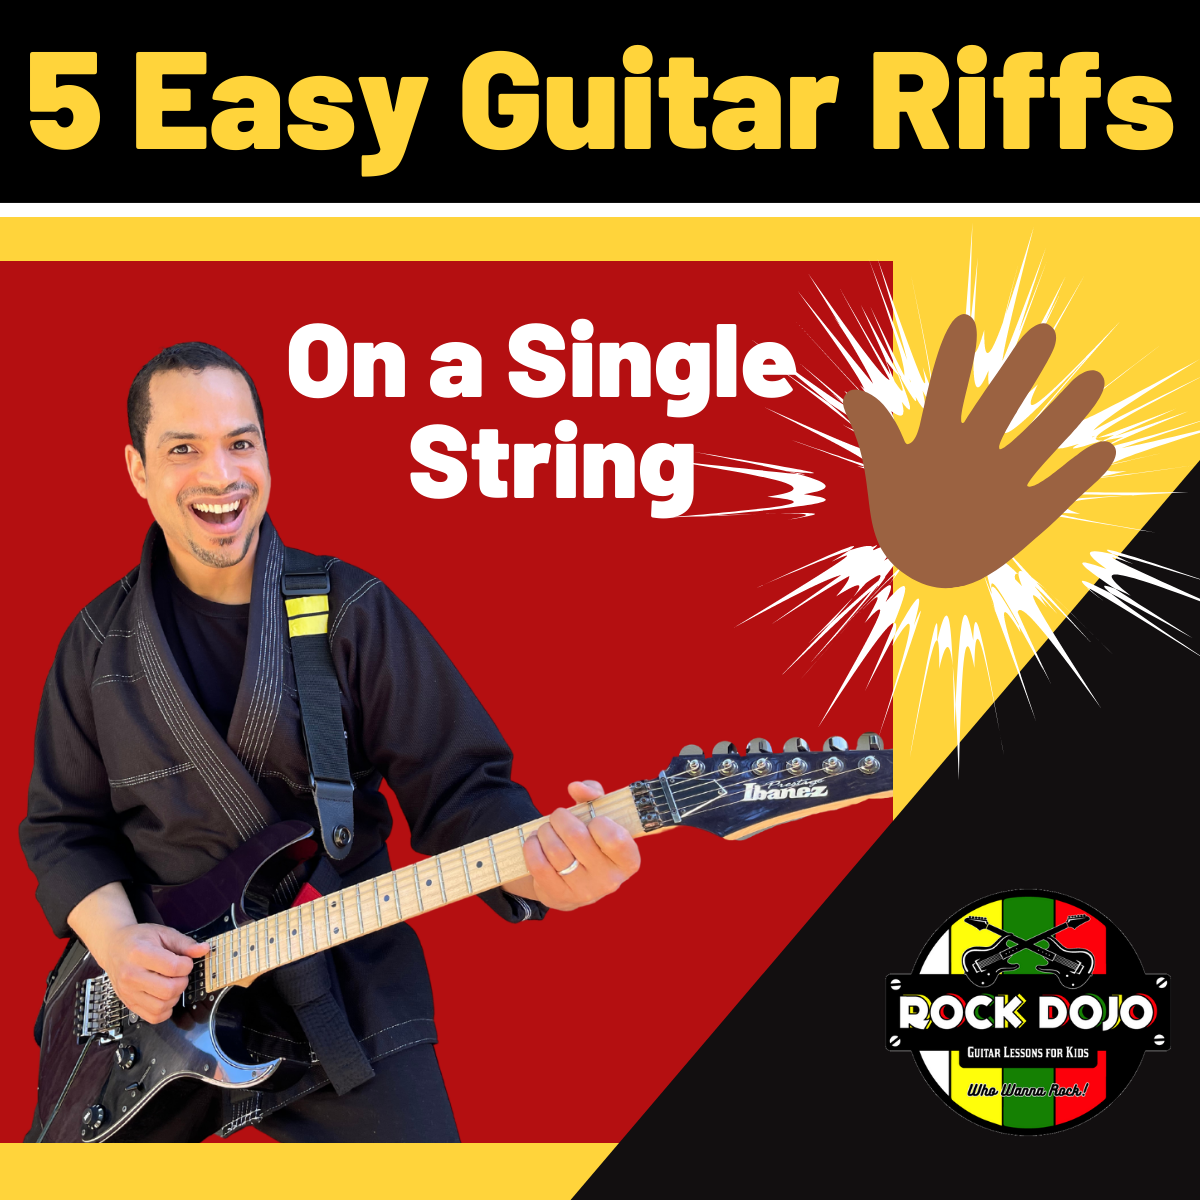 5 Easy Guitar Riffs on a Single String Online Guitar Lessons for Kids